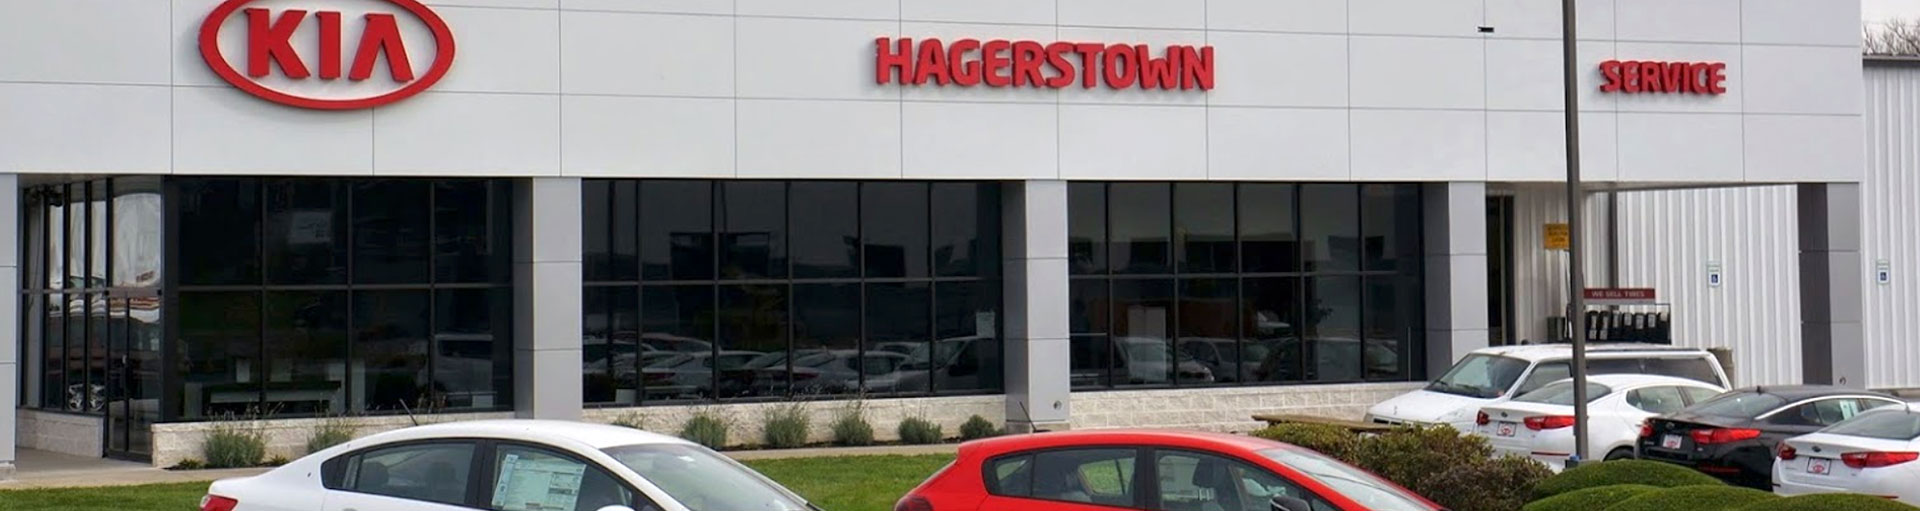 Hagerstown Kia Parts Department